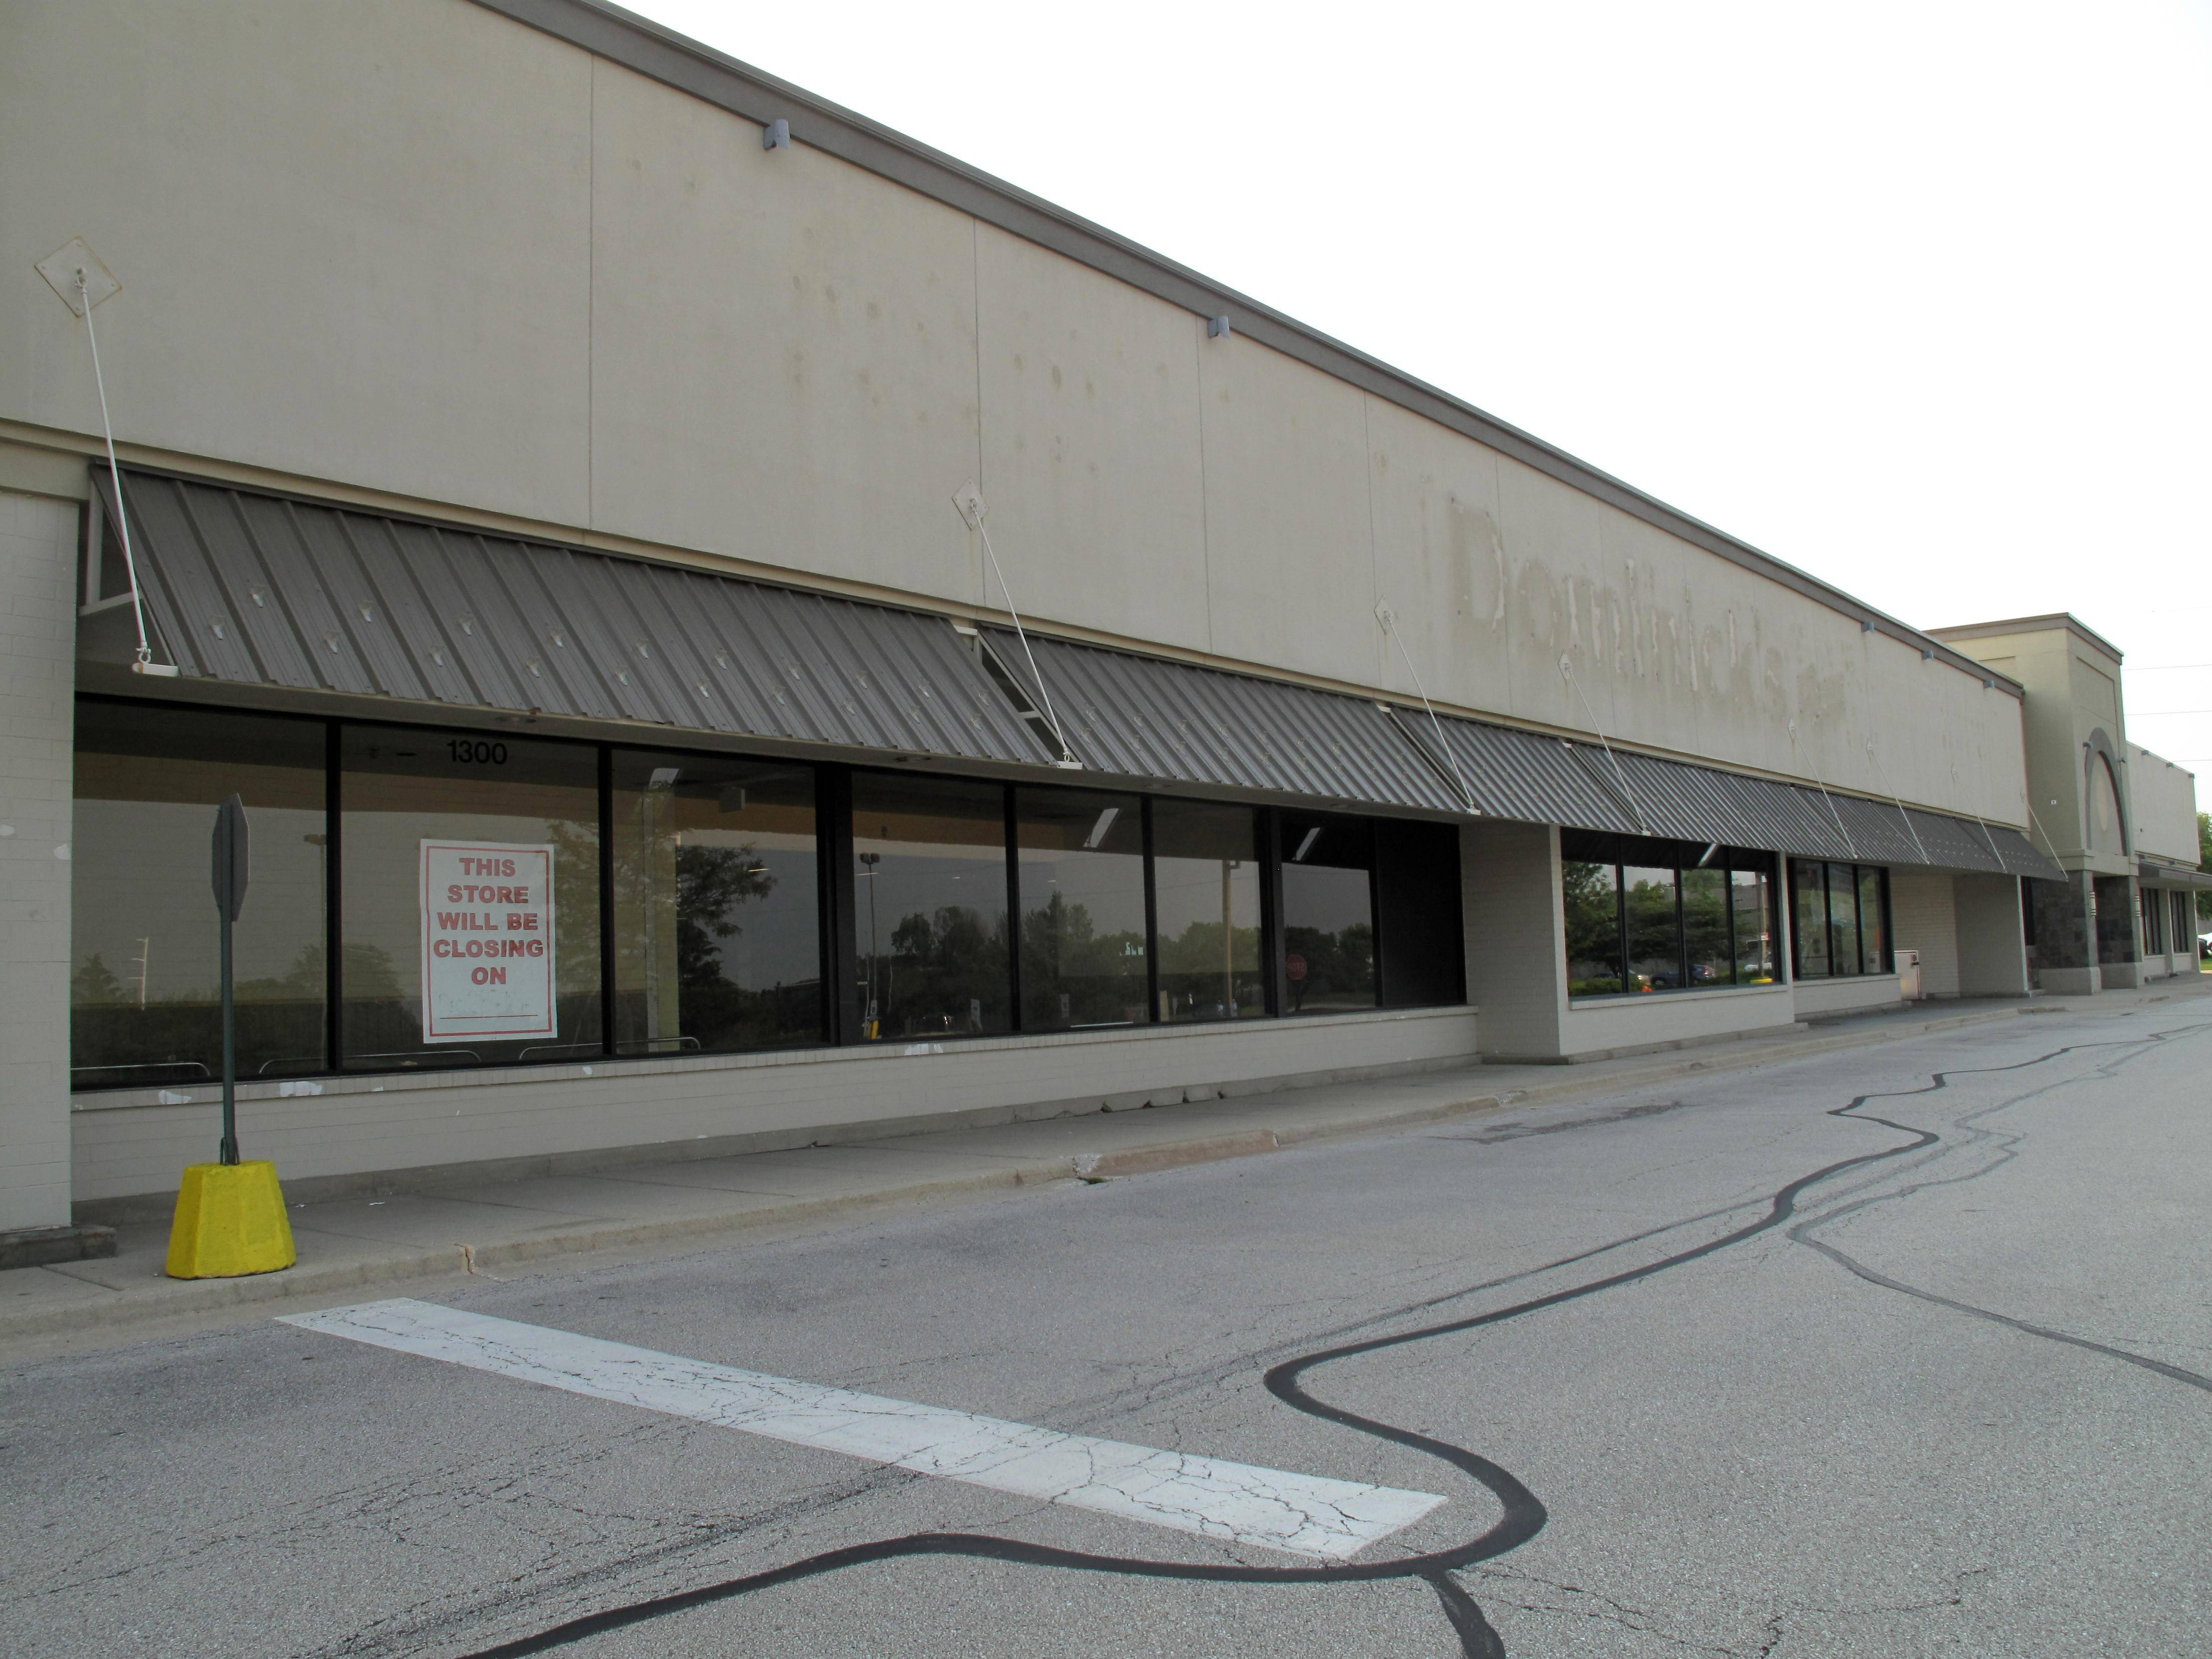 A Mariano's grocery store to replace the former Dominick's at 1300 Naper Boulevard in Naperville is scheduled to open in 2016. The former store will be demolished before a new Mariano's is built.